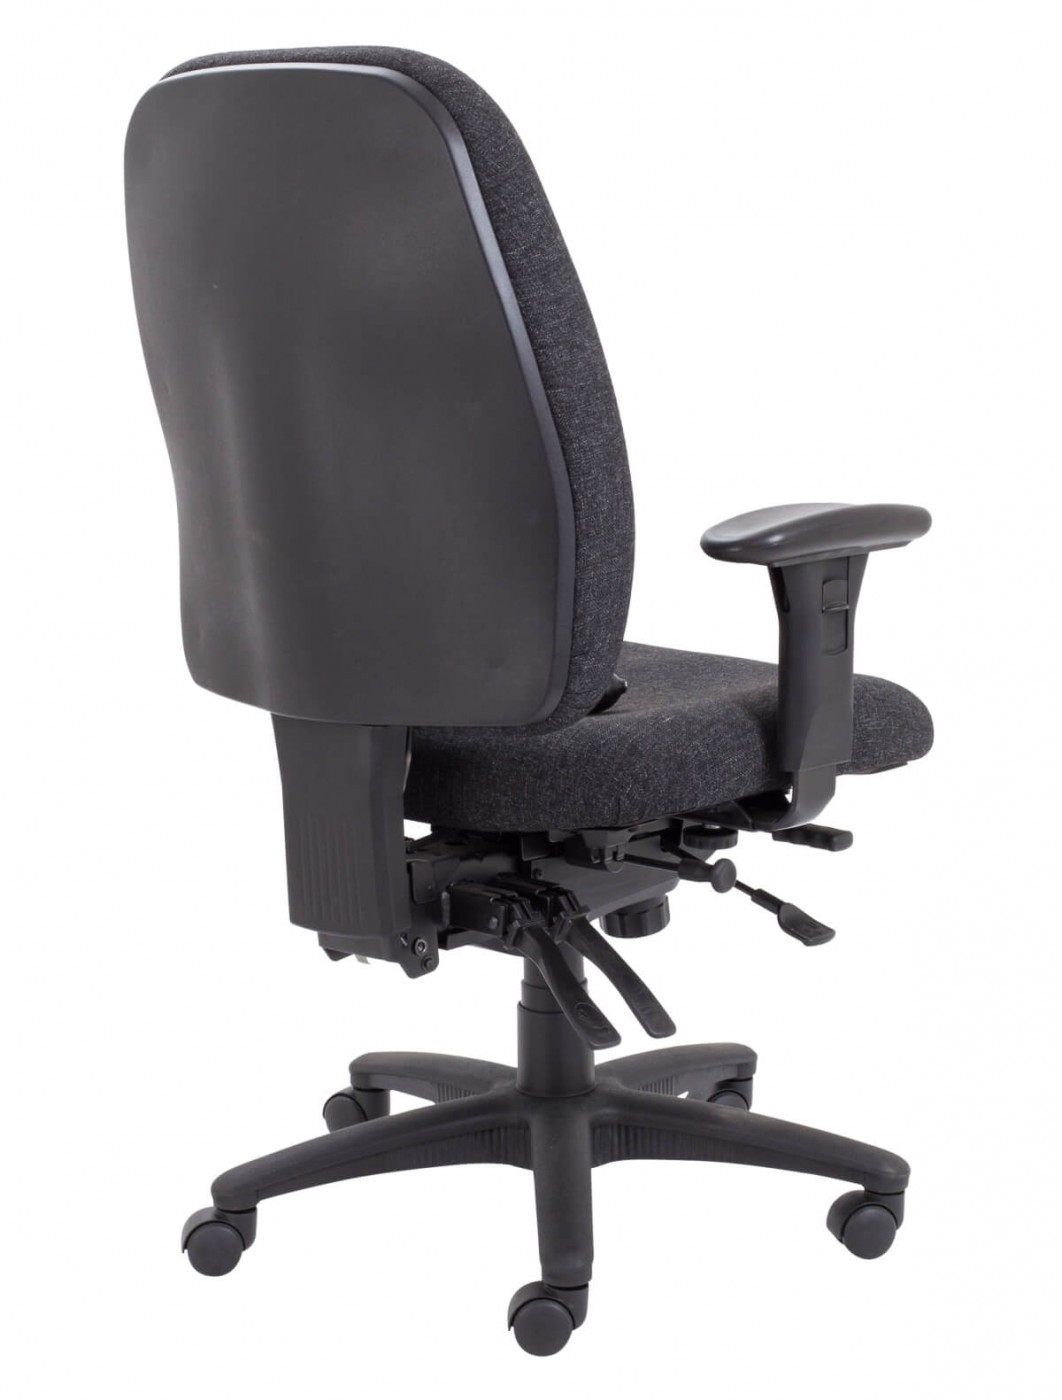 fabric for office chair upholstery steel manufacturers in hyderabad chairs vista ch0903ch 121